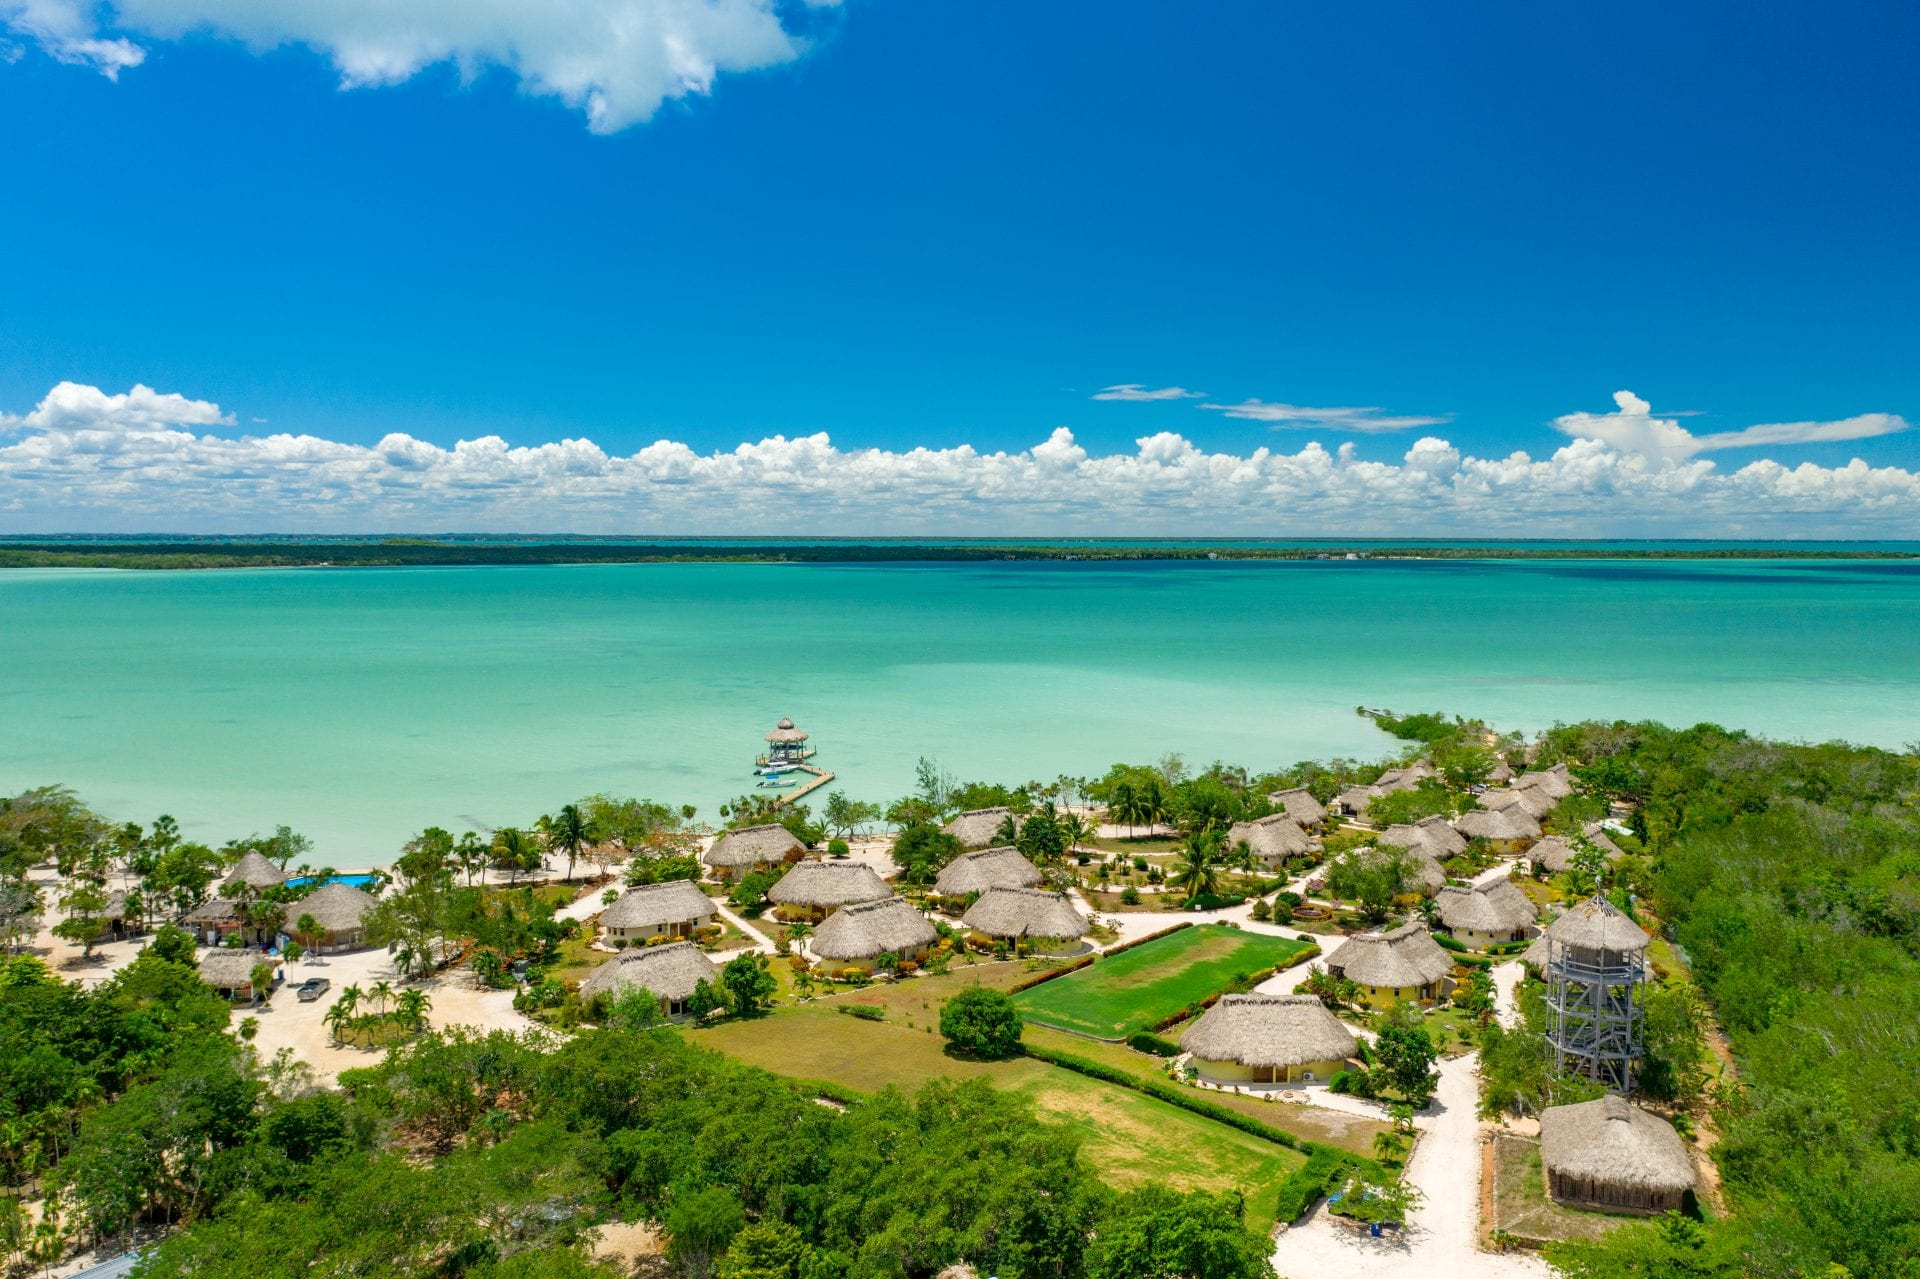 Corozal orchid bay